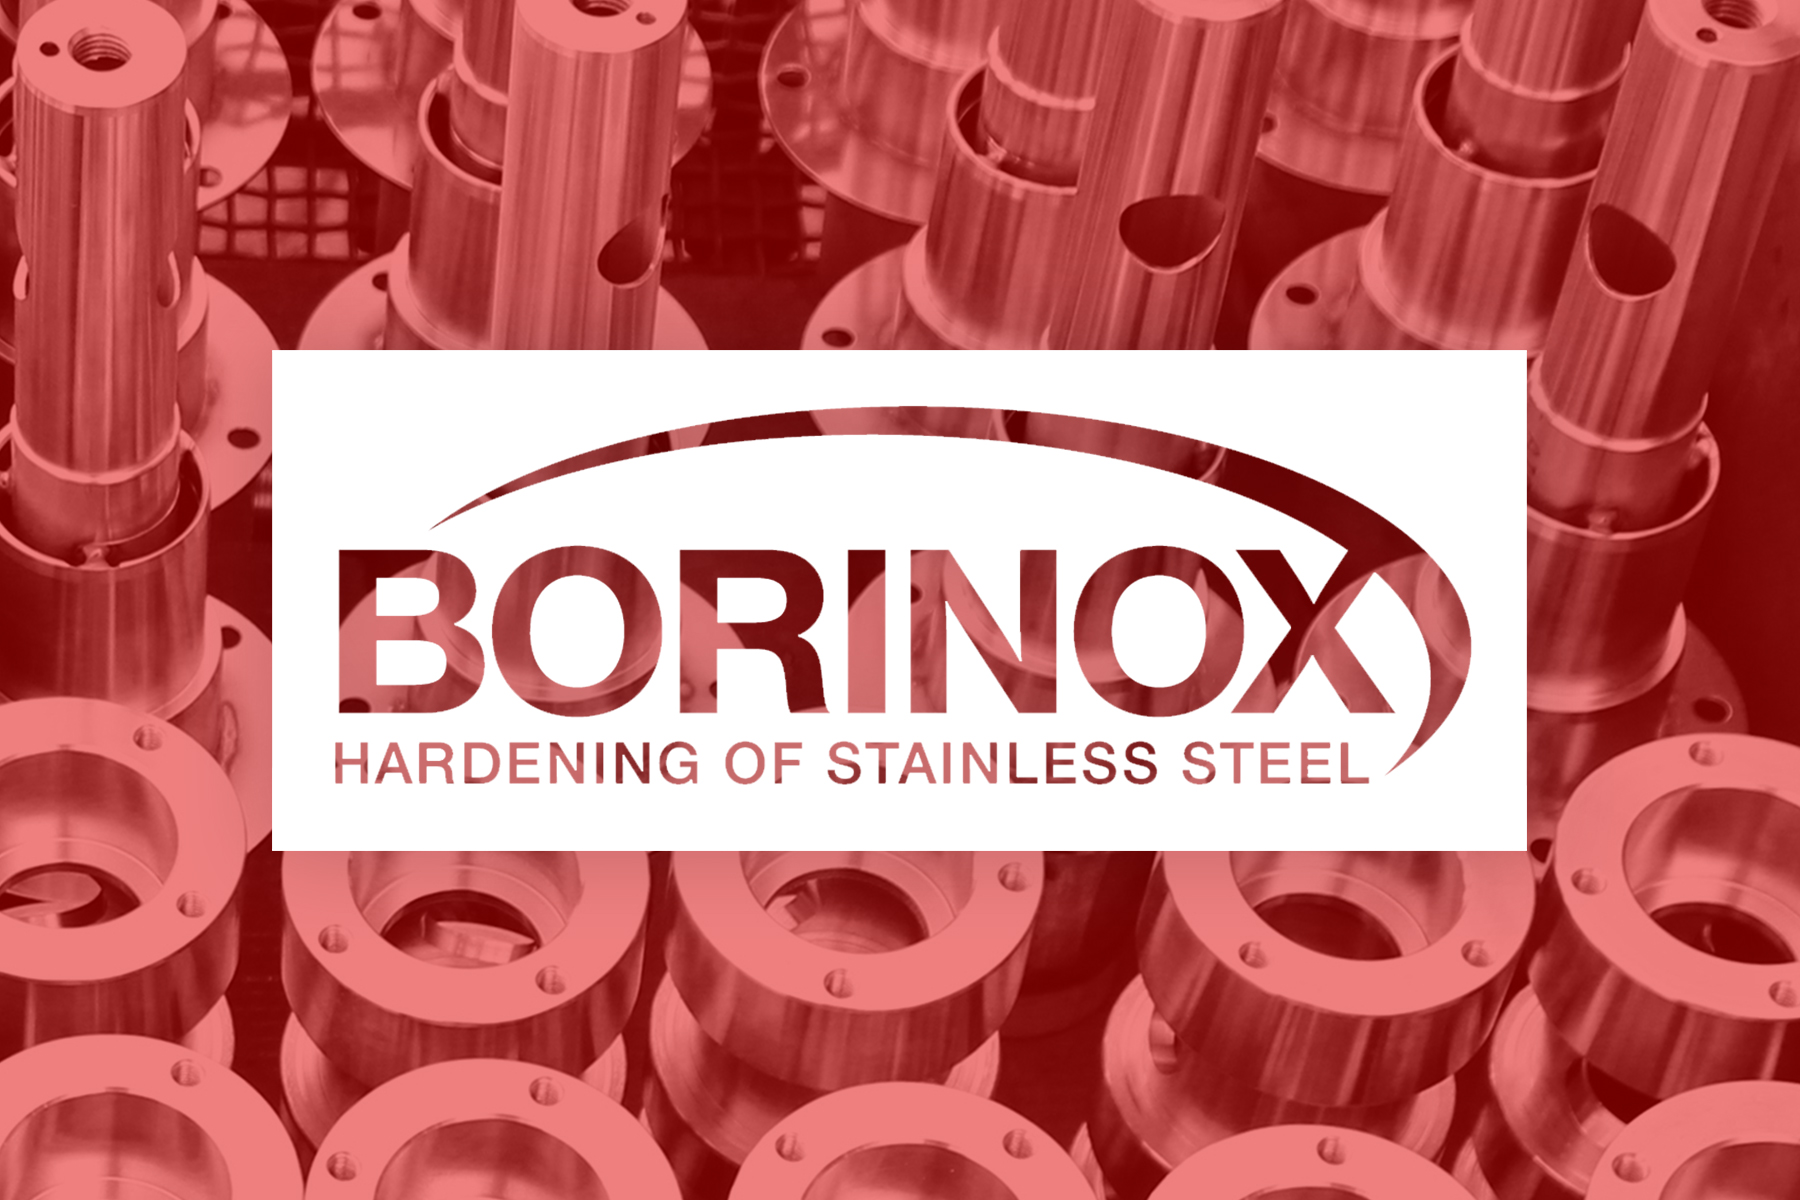 Borinox - Hardening of stainless Steel